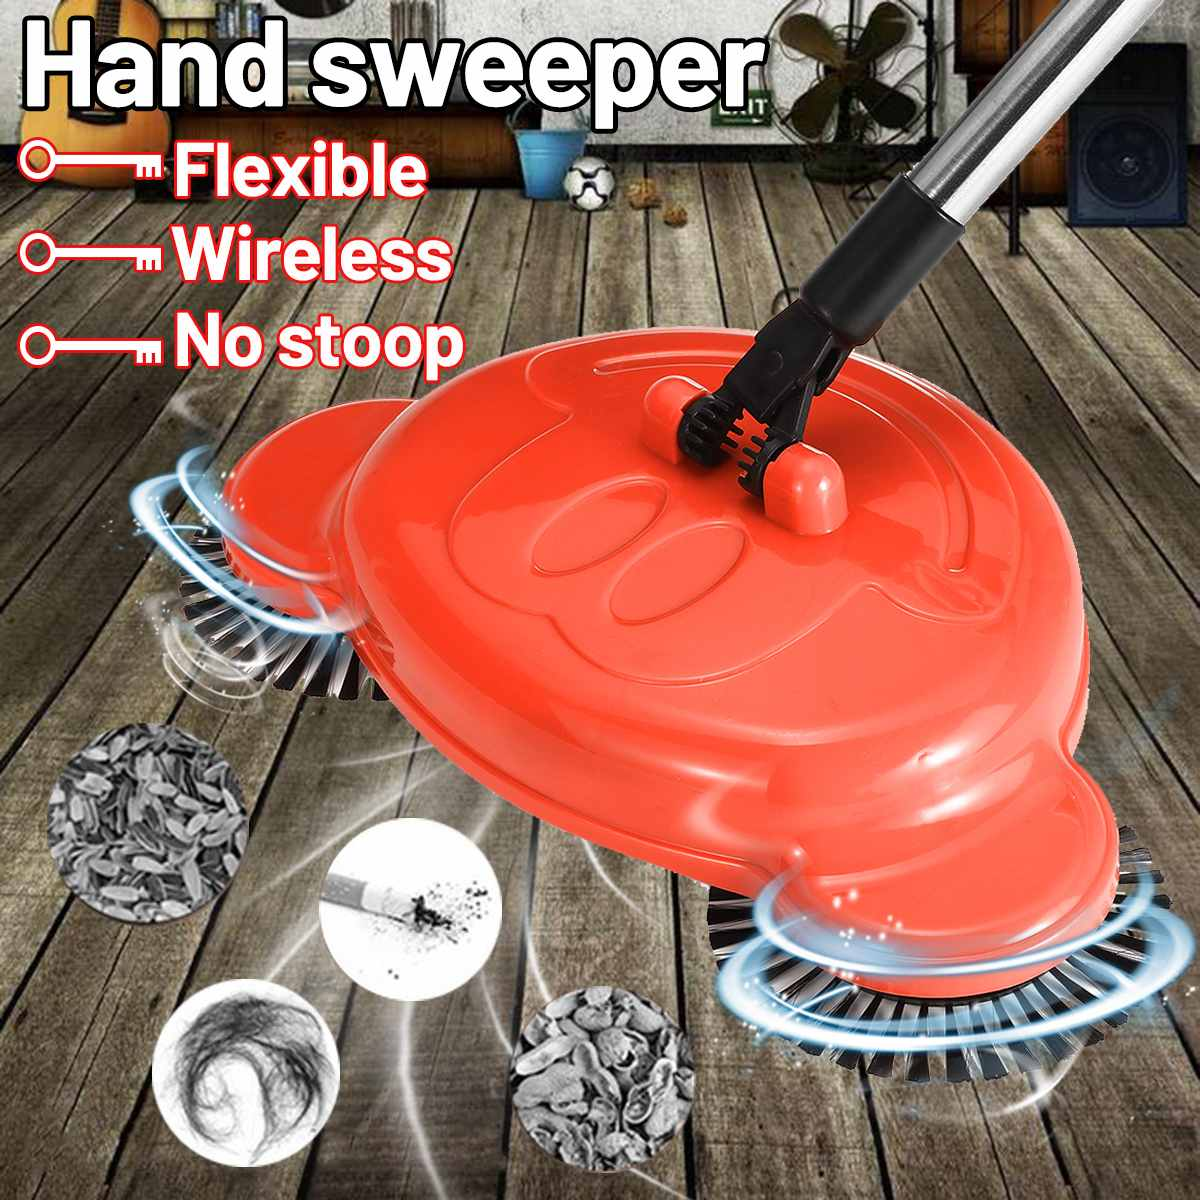 Stainless Steel Hand Sweeper Push Type Sweeping Machine Without Electricity Dry Wet Use Lazy Household Vacuum Cleaner